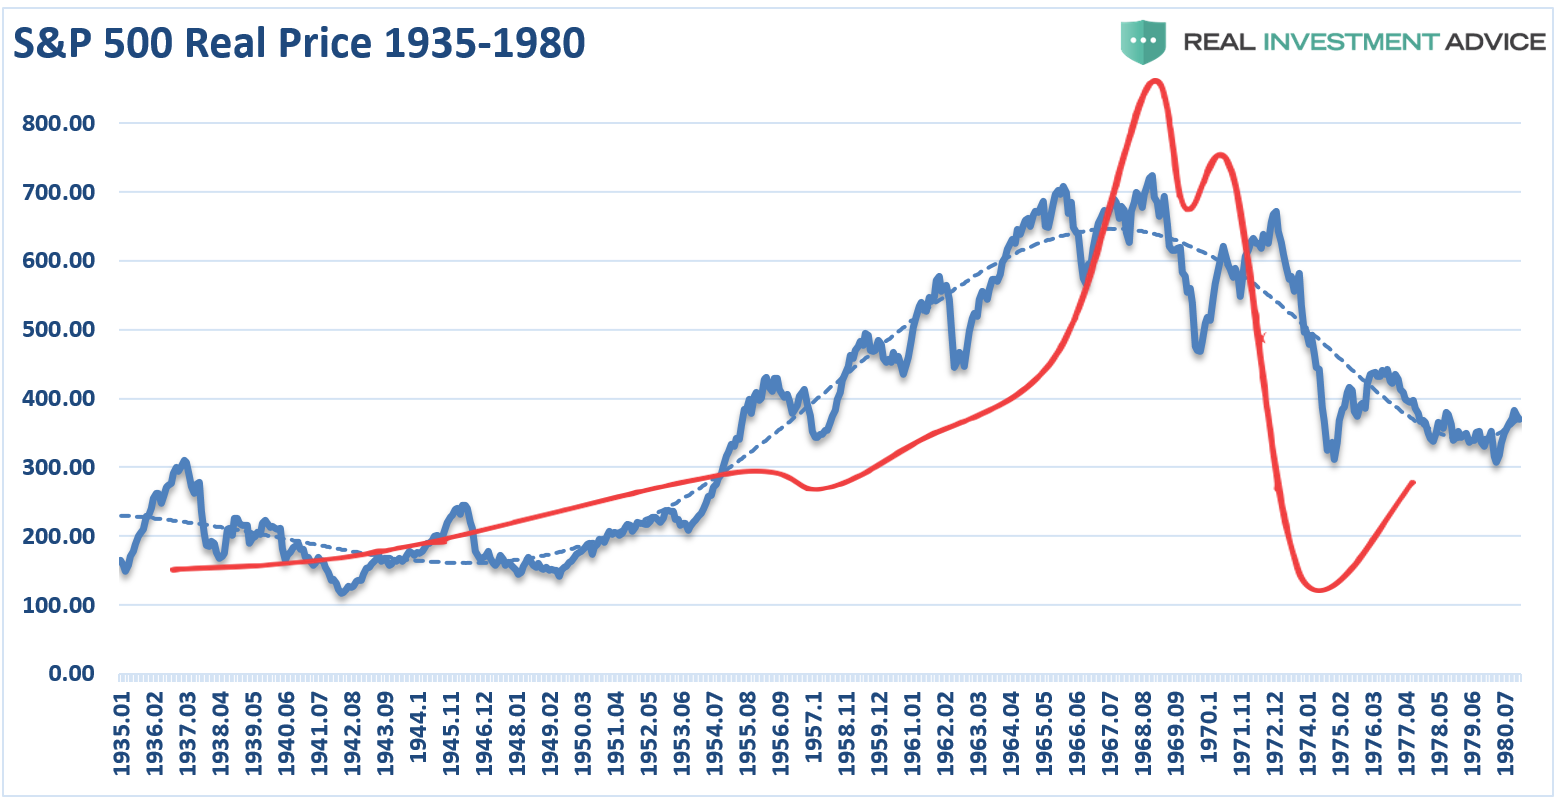 S&P 500-Real Price 1935-1980